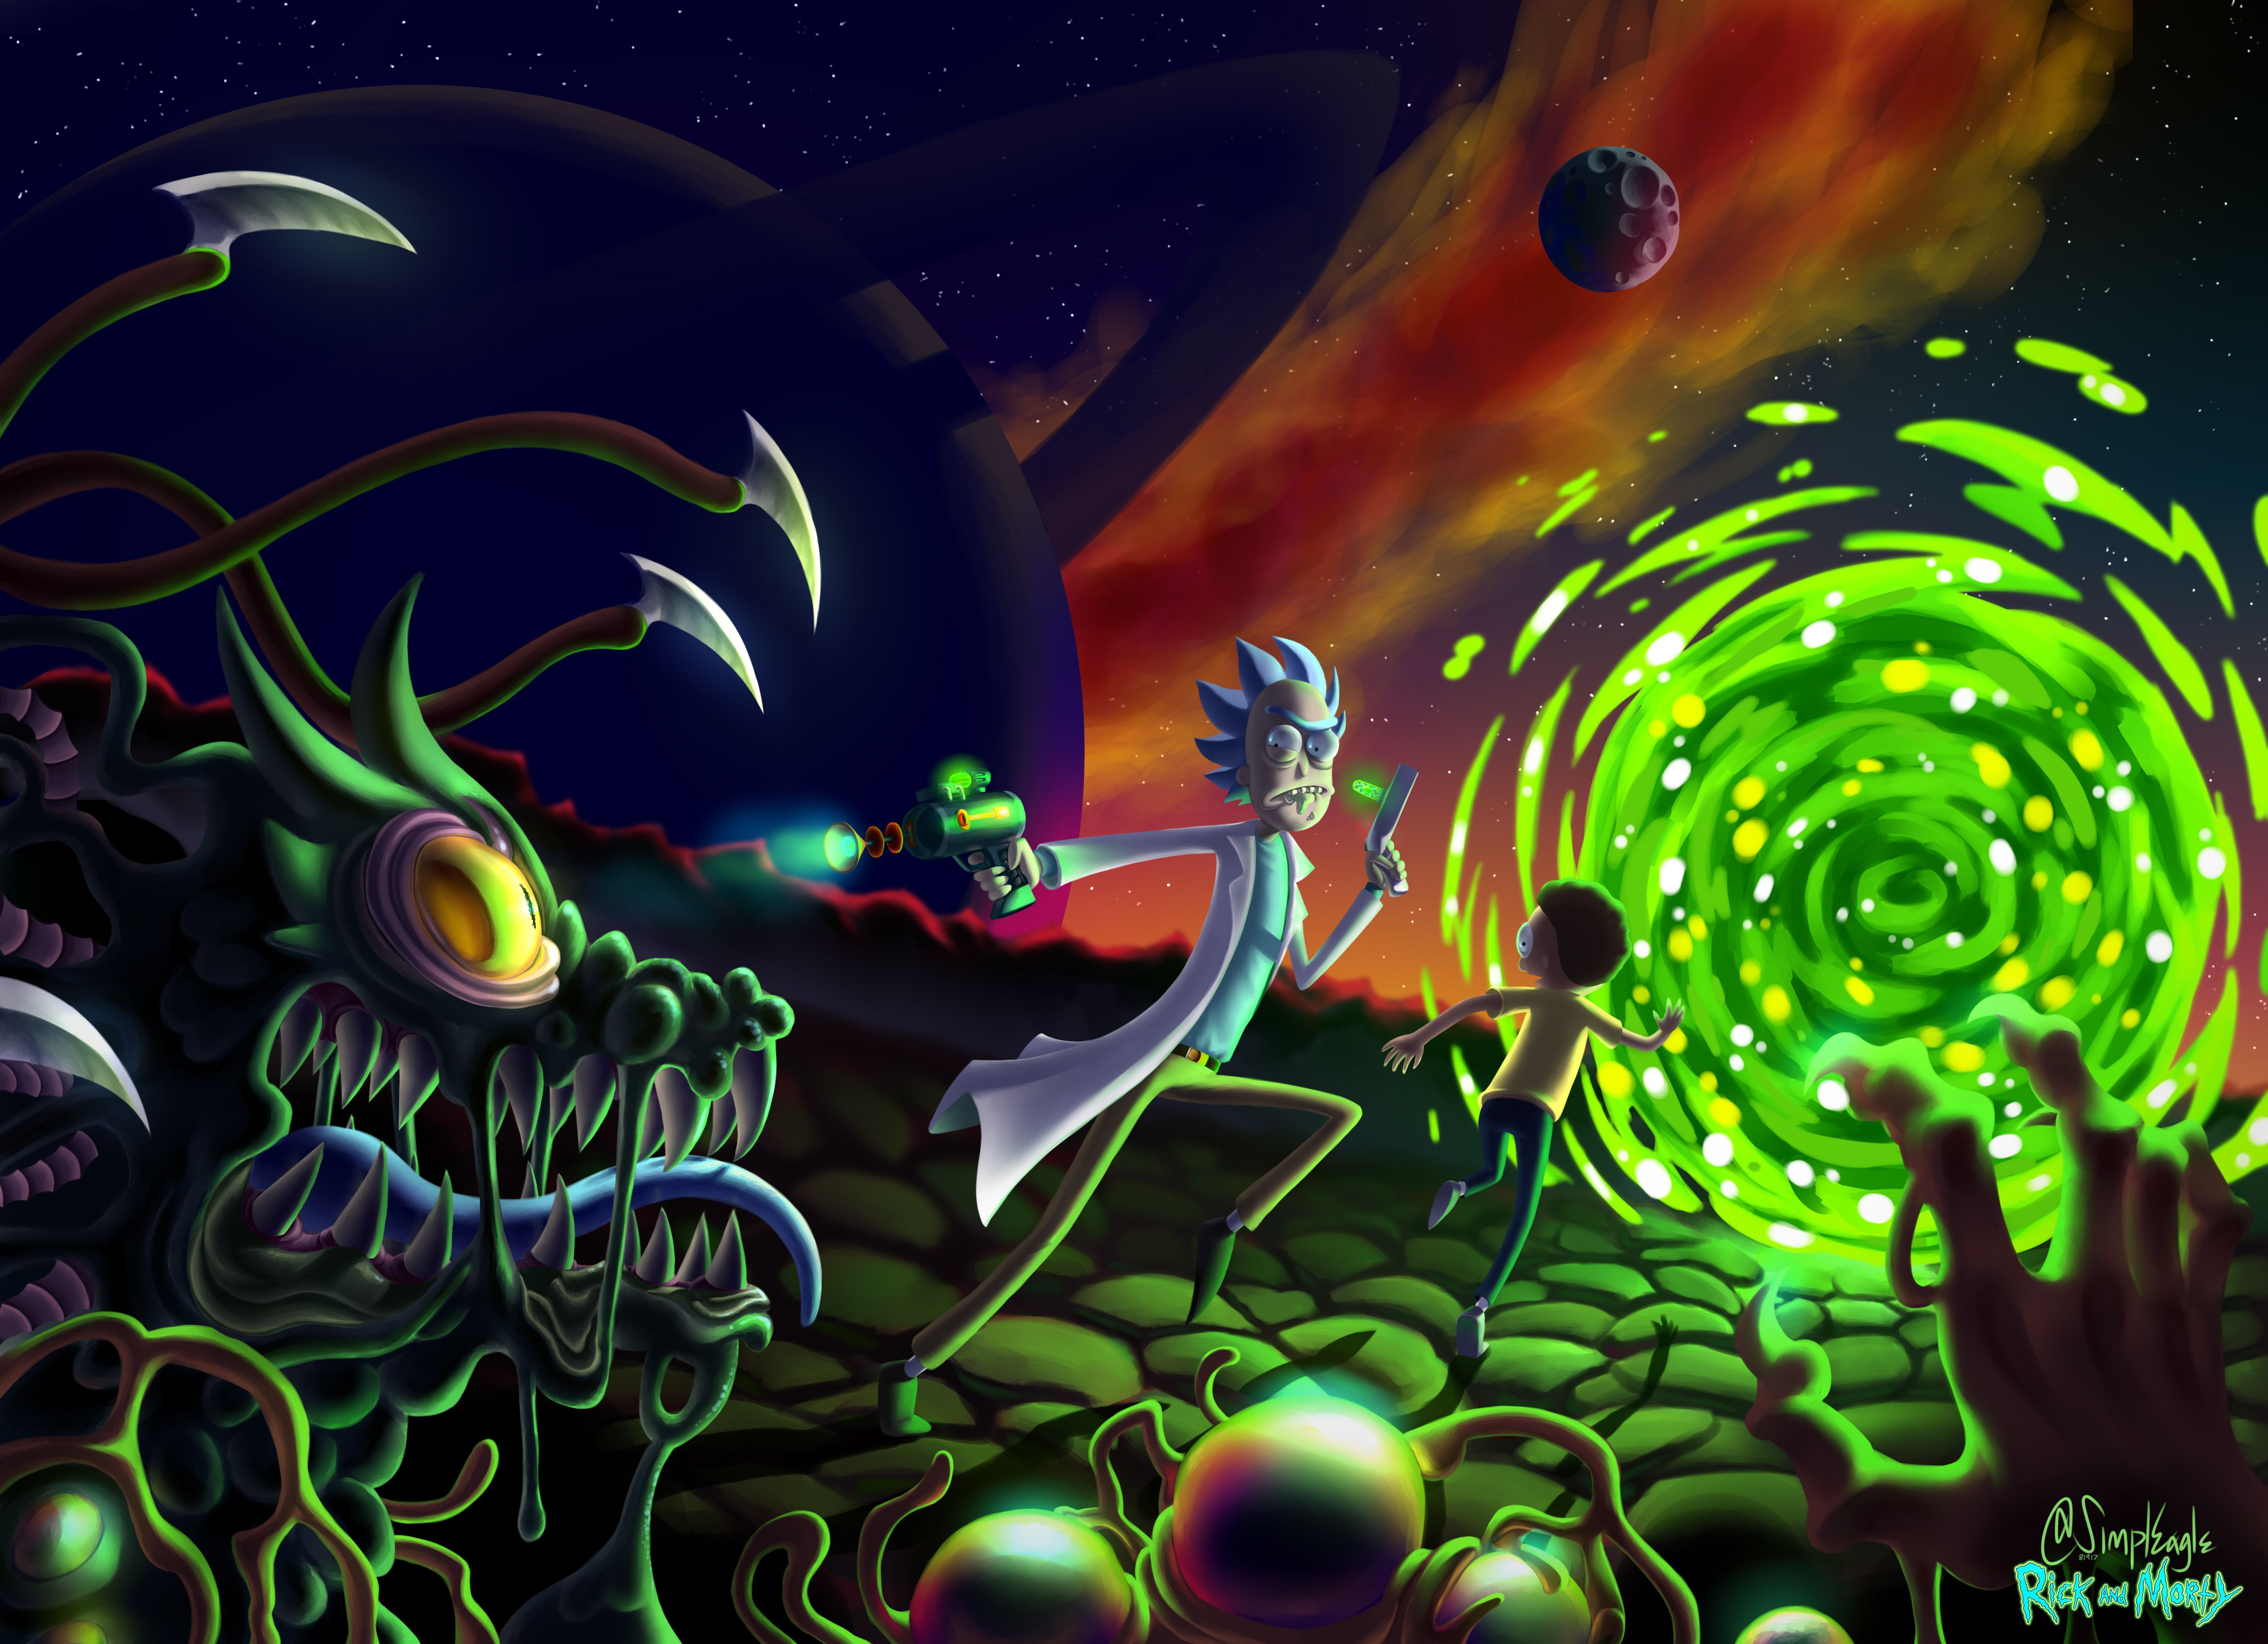 Rick And Morty 5k Fan Art By Ultra Hd Wallpaper 2018 Rick And Morty Poster Rick And Morty Stickers Rick And Morty